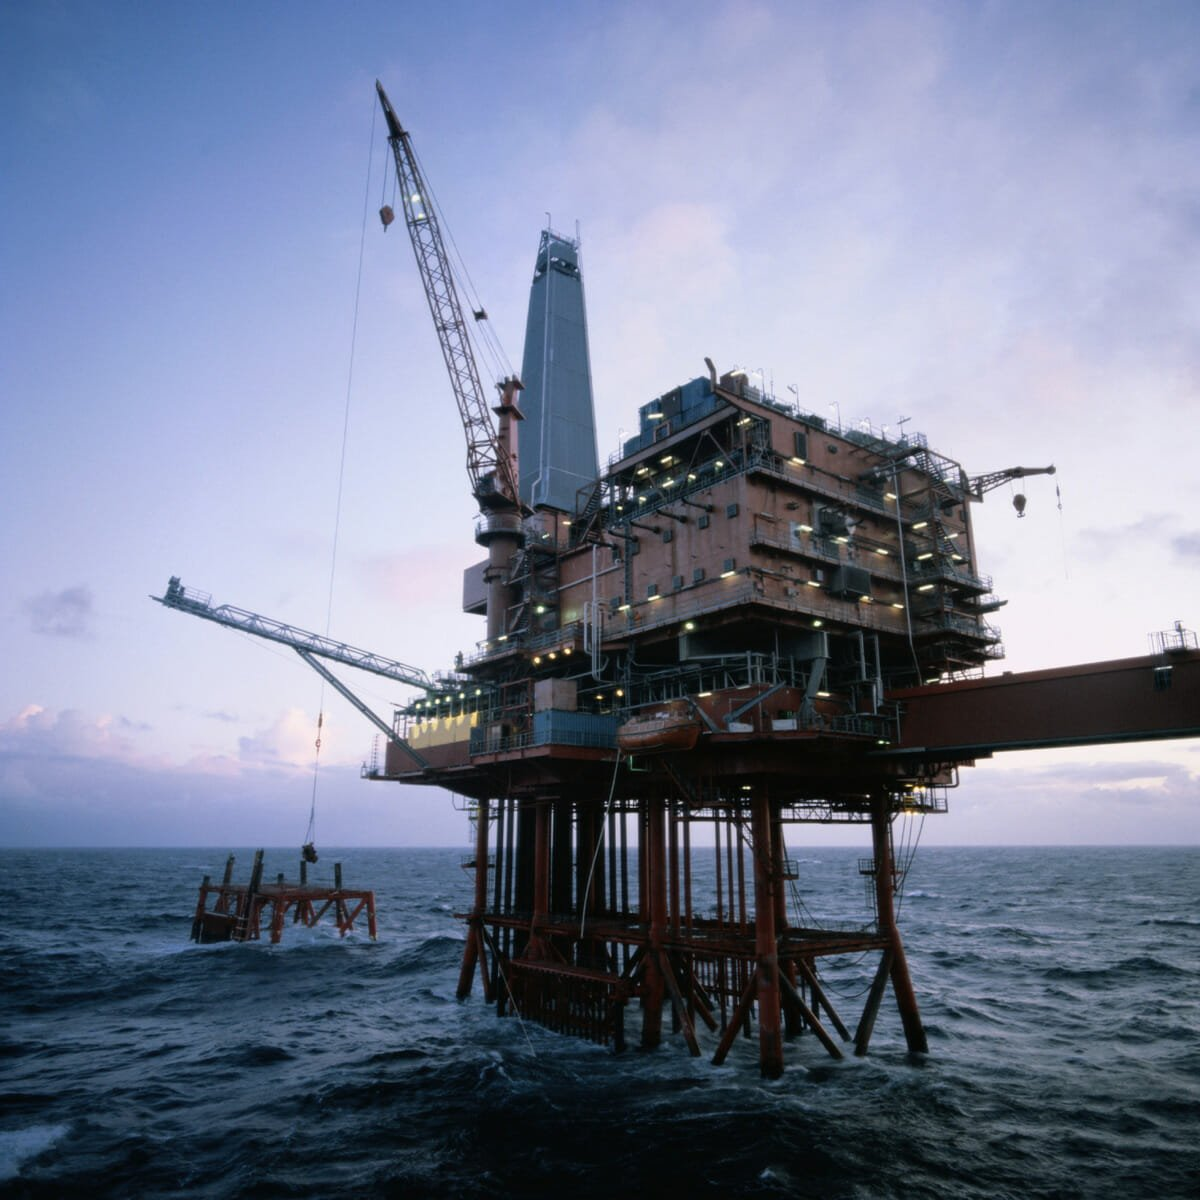 petroleum industry Oil industry news - ogp updates, news and resources - 18 april 2018 on oil and gas people - the recruitment solution for oil and gas jobs - search thousands of oil & gas jobs covering all oil careers and gas employment we also provide a rapid and cost effective service to employers in the gas and oil industry.